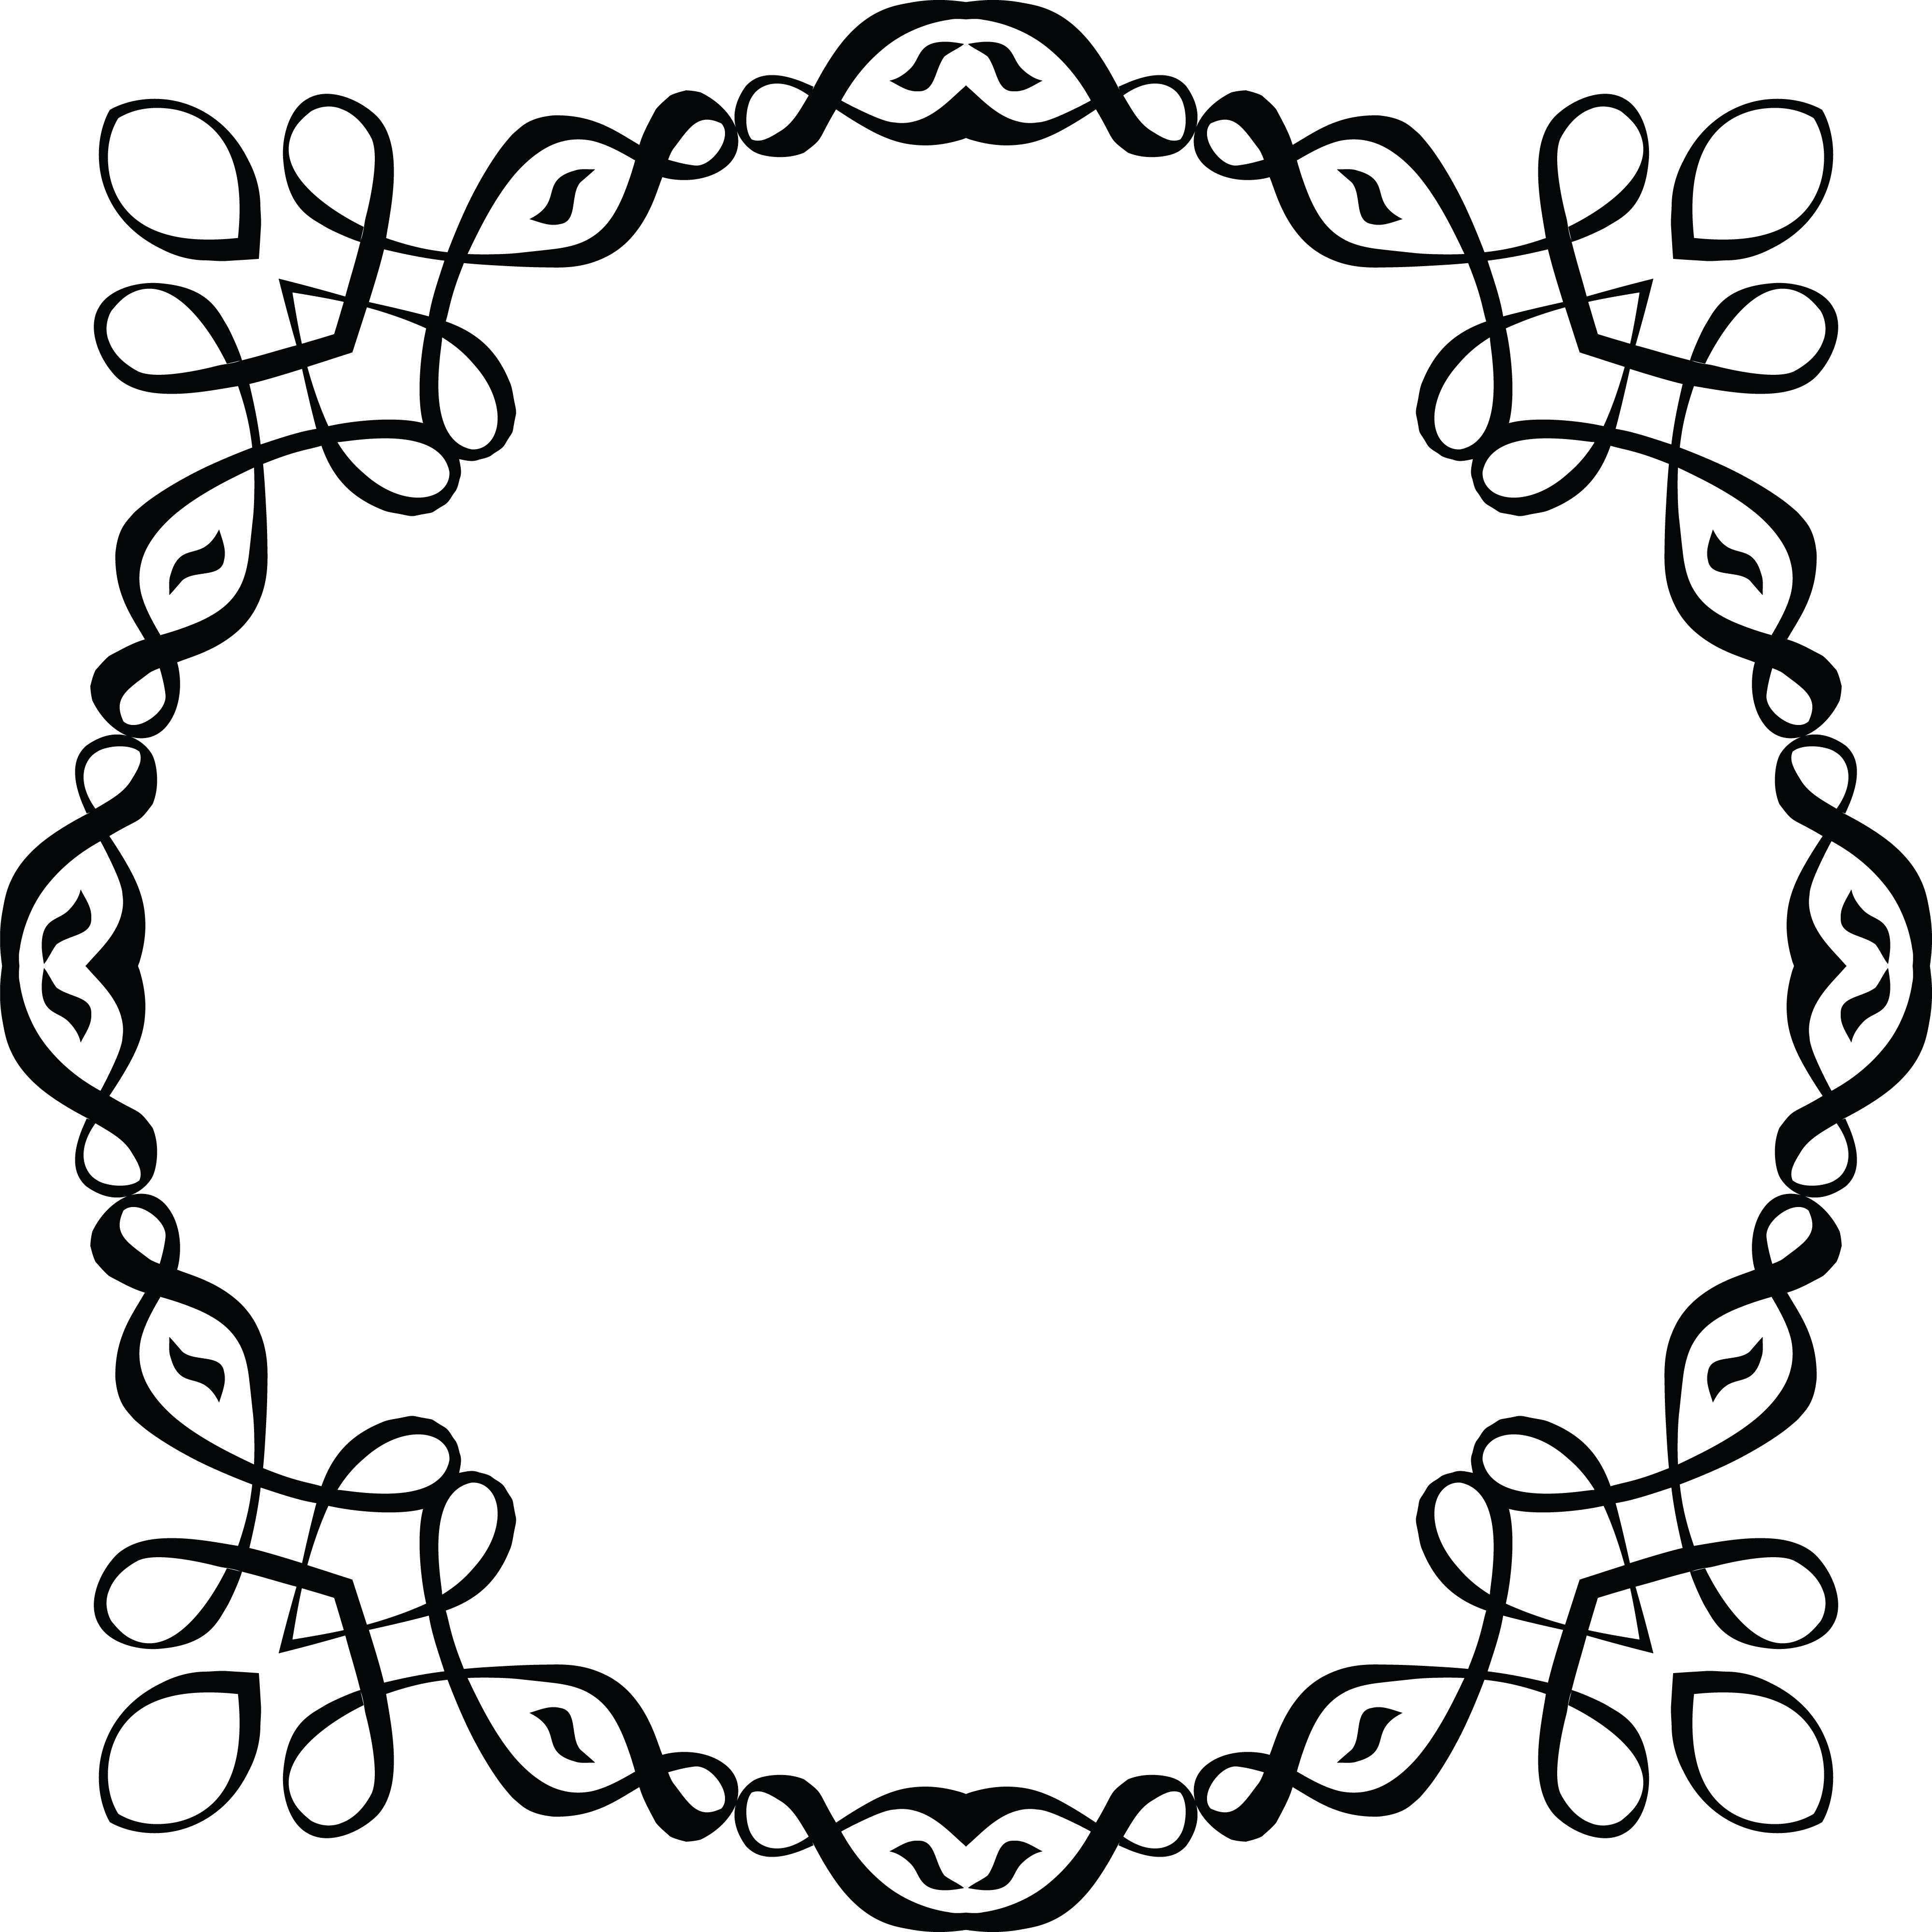 Free Clipart of a Black and White Round Invitation Border.